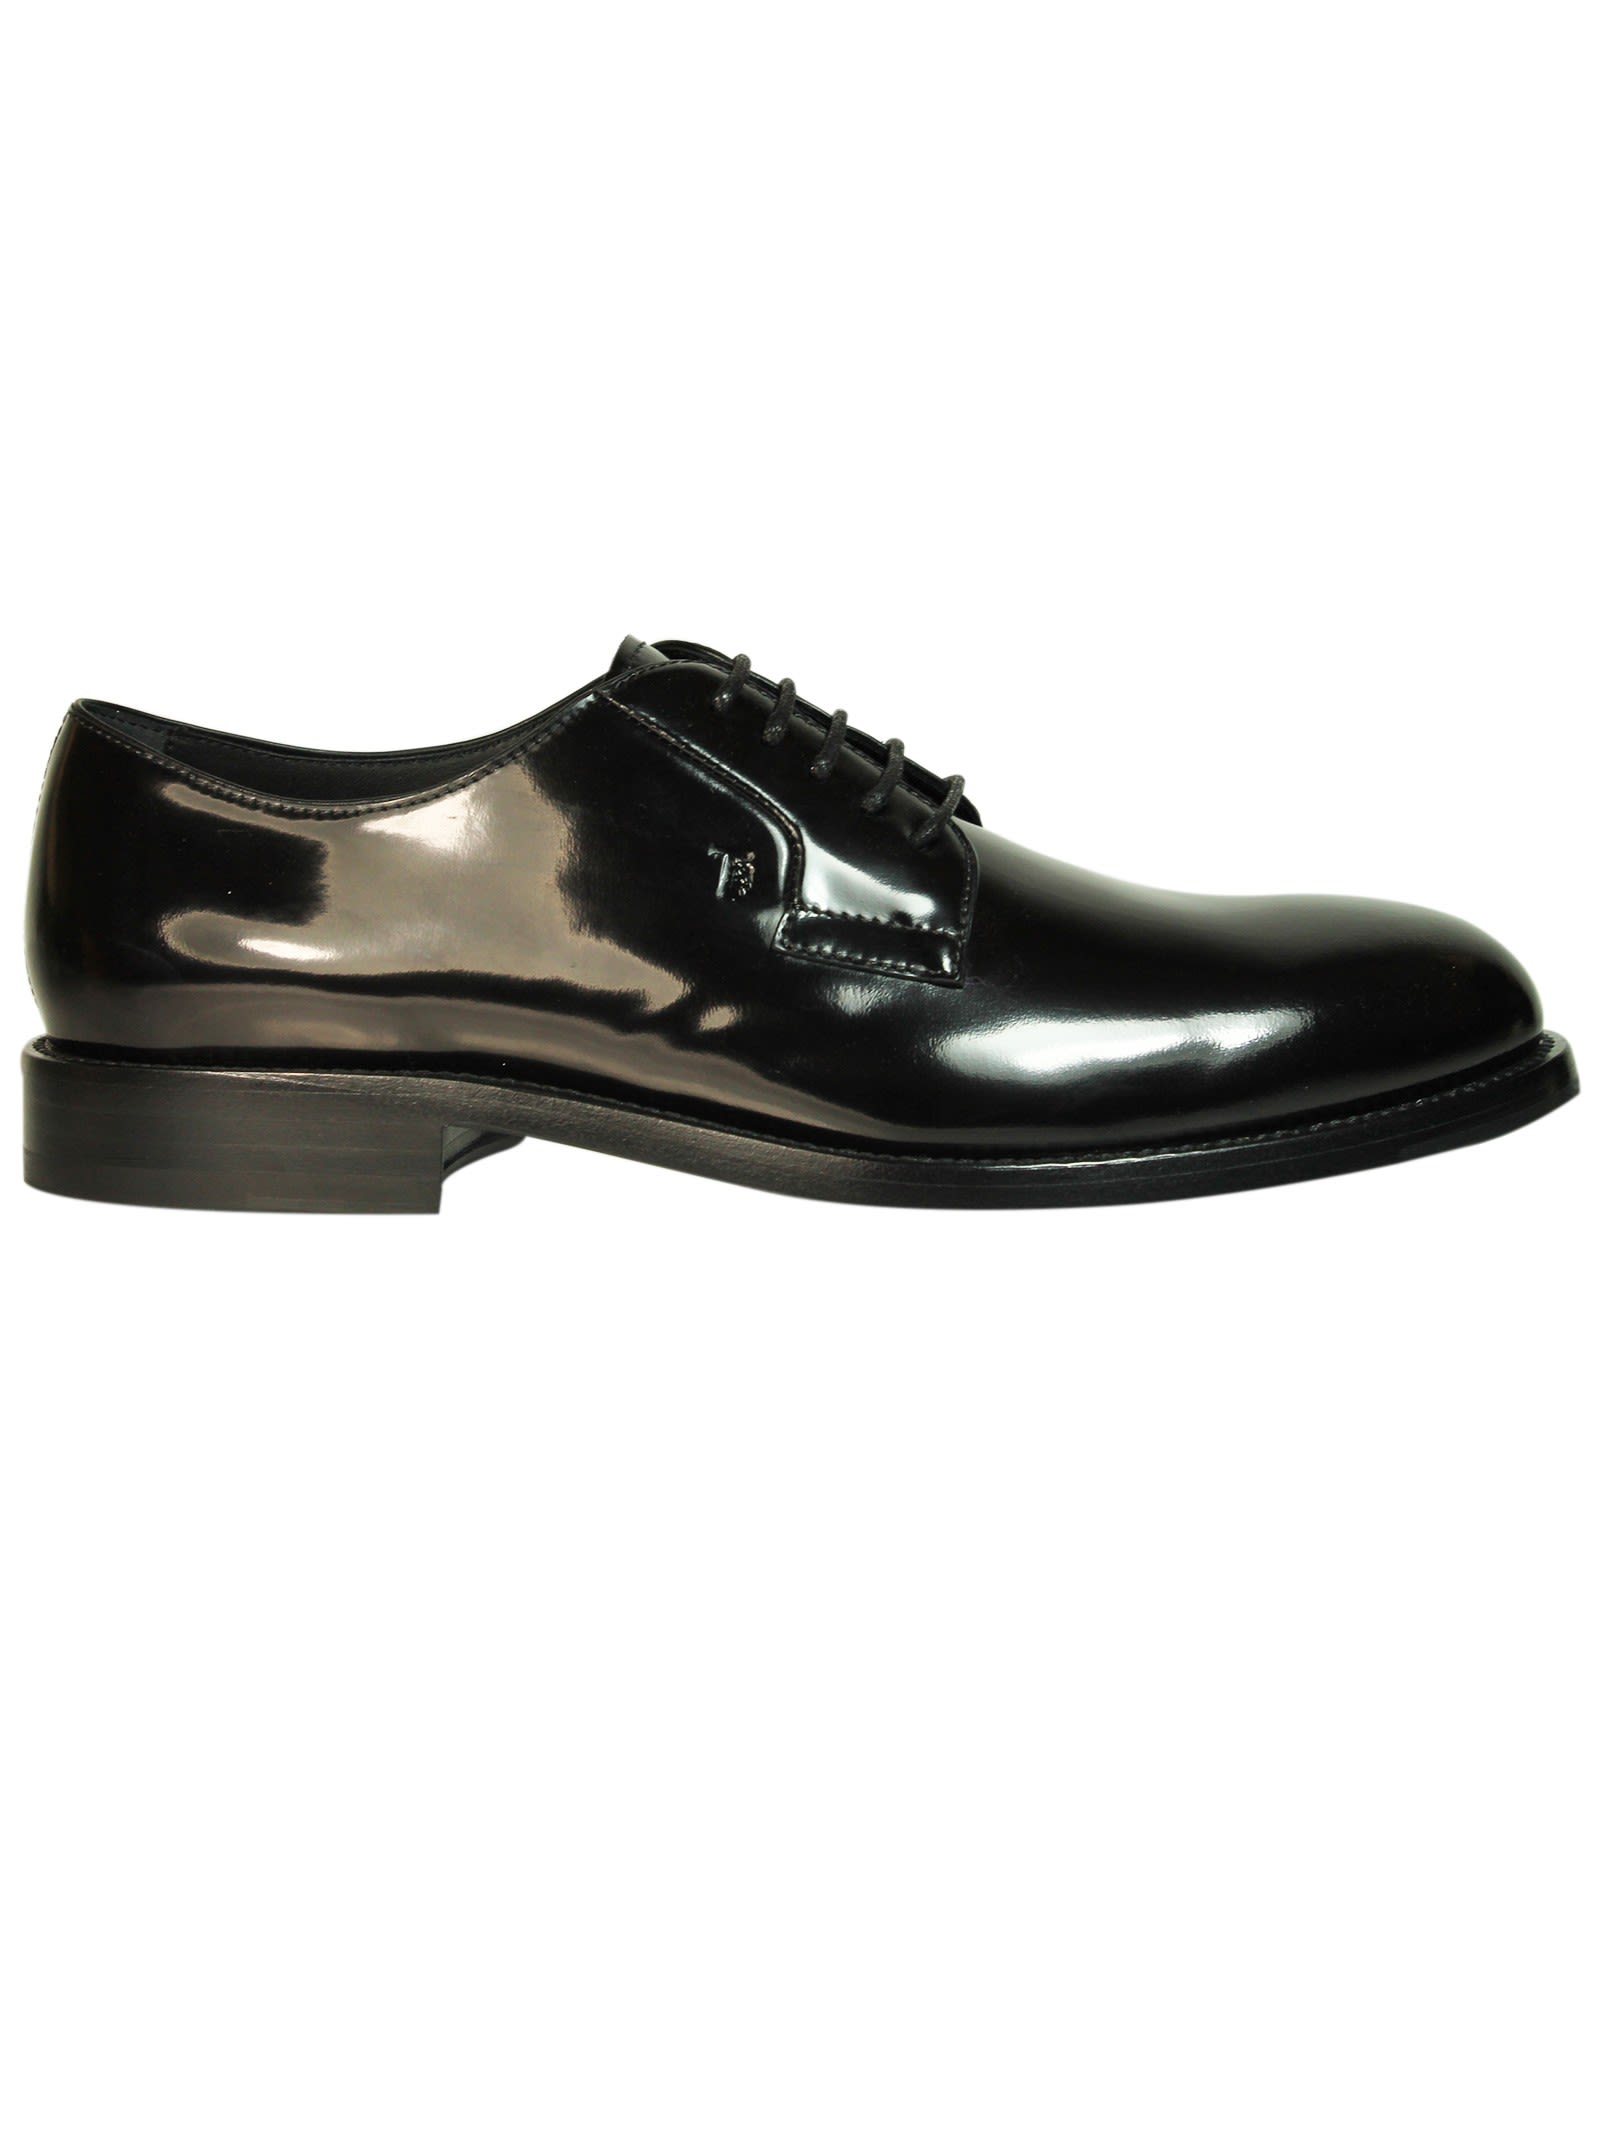 Tods Black Patent Leather Derby Shoes